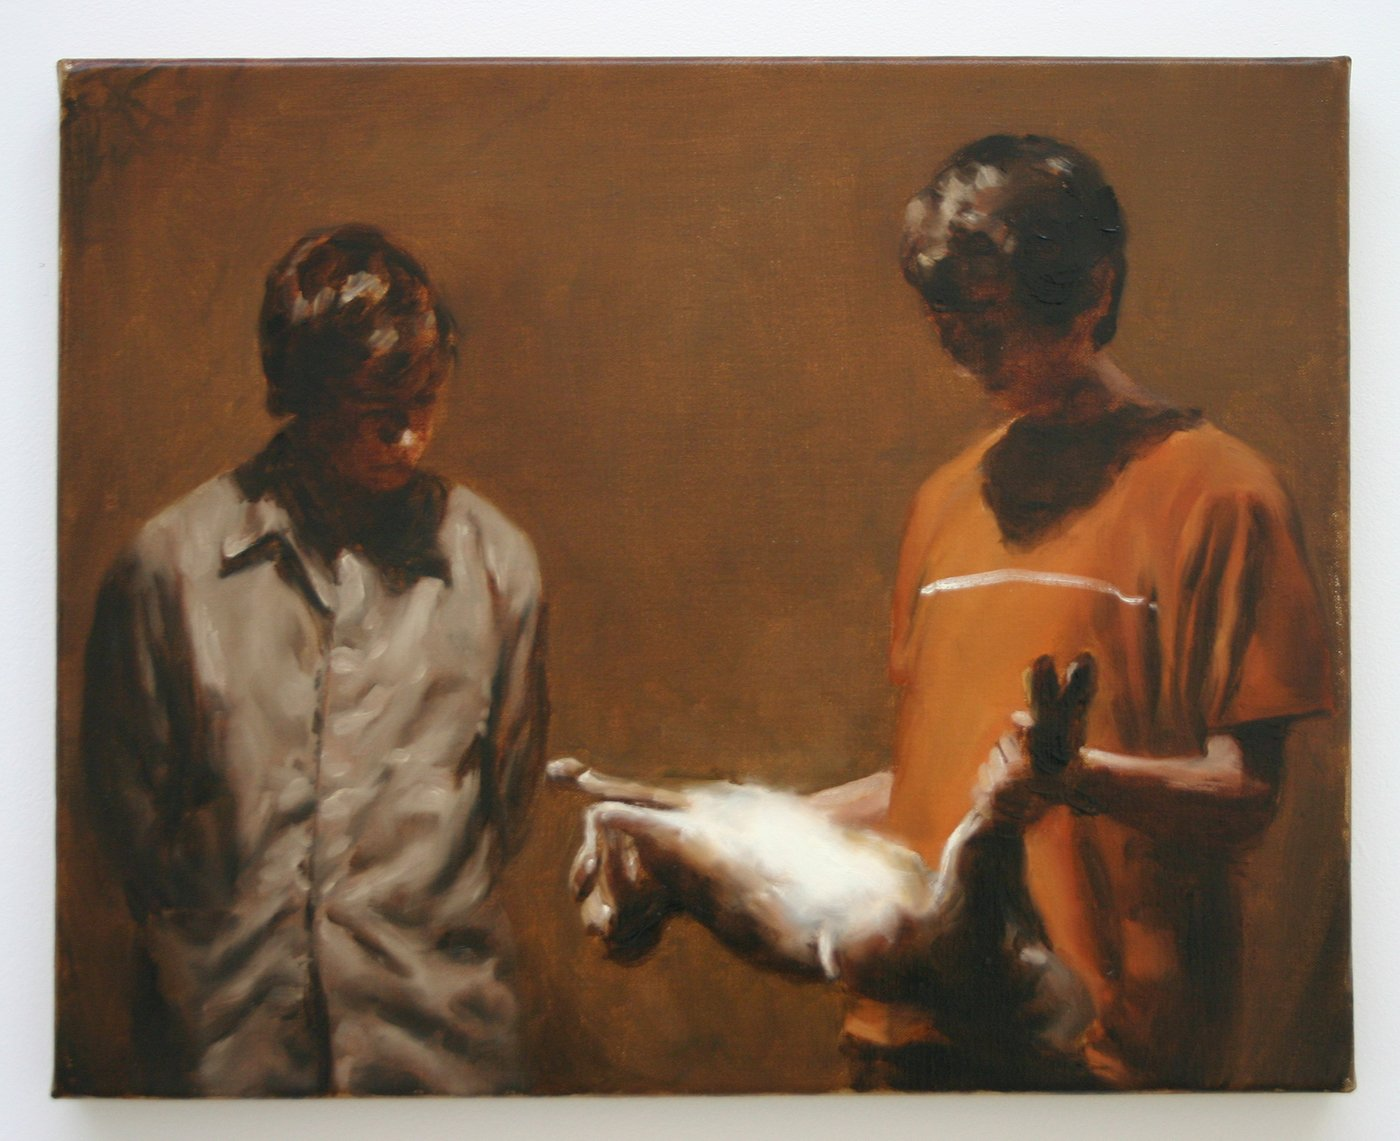 Artwork image, Michaël Borremans's The Hare